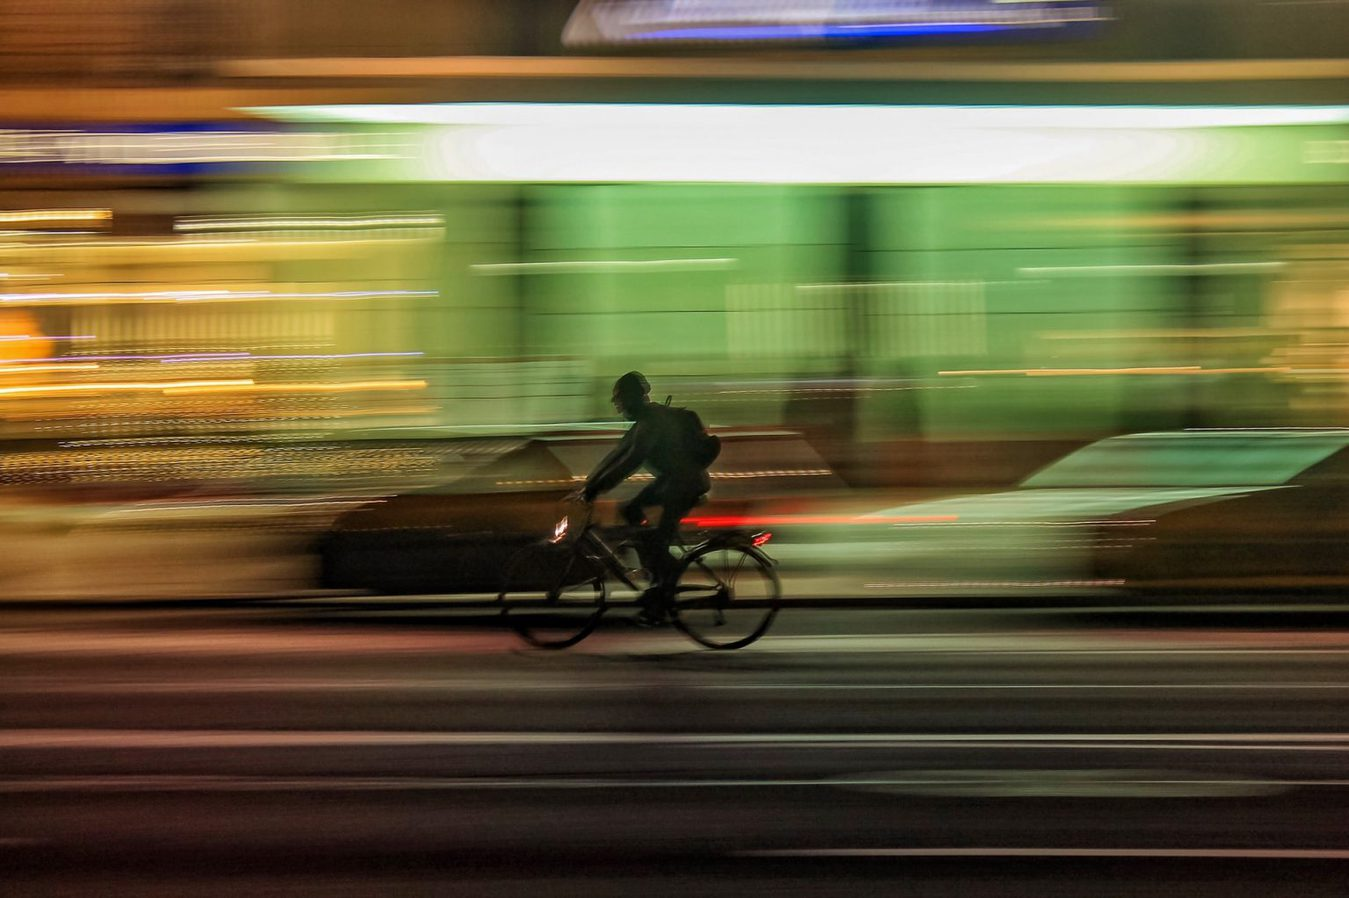 Person riding bicycle background blurry